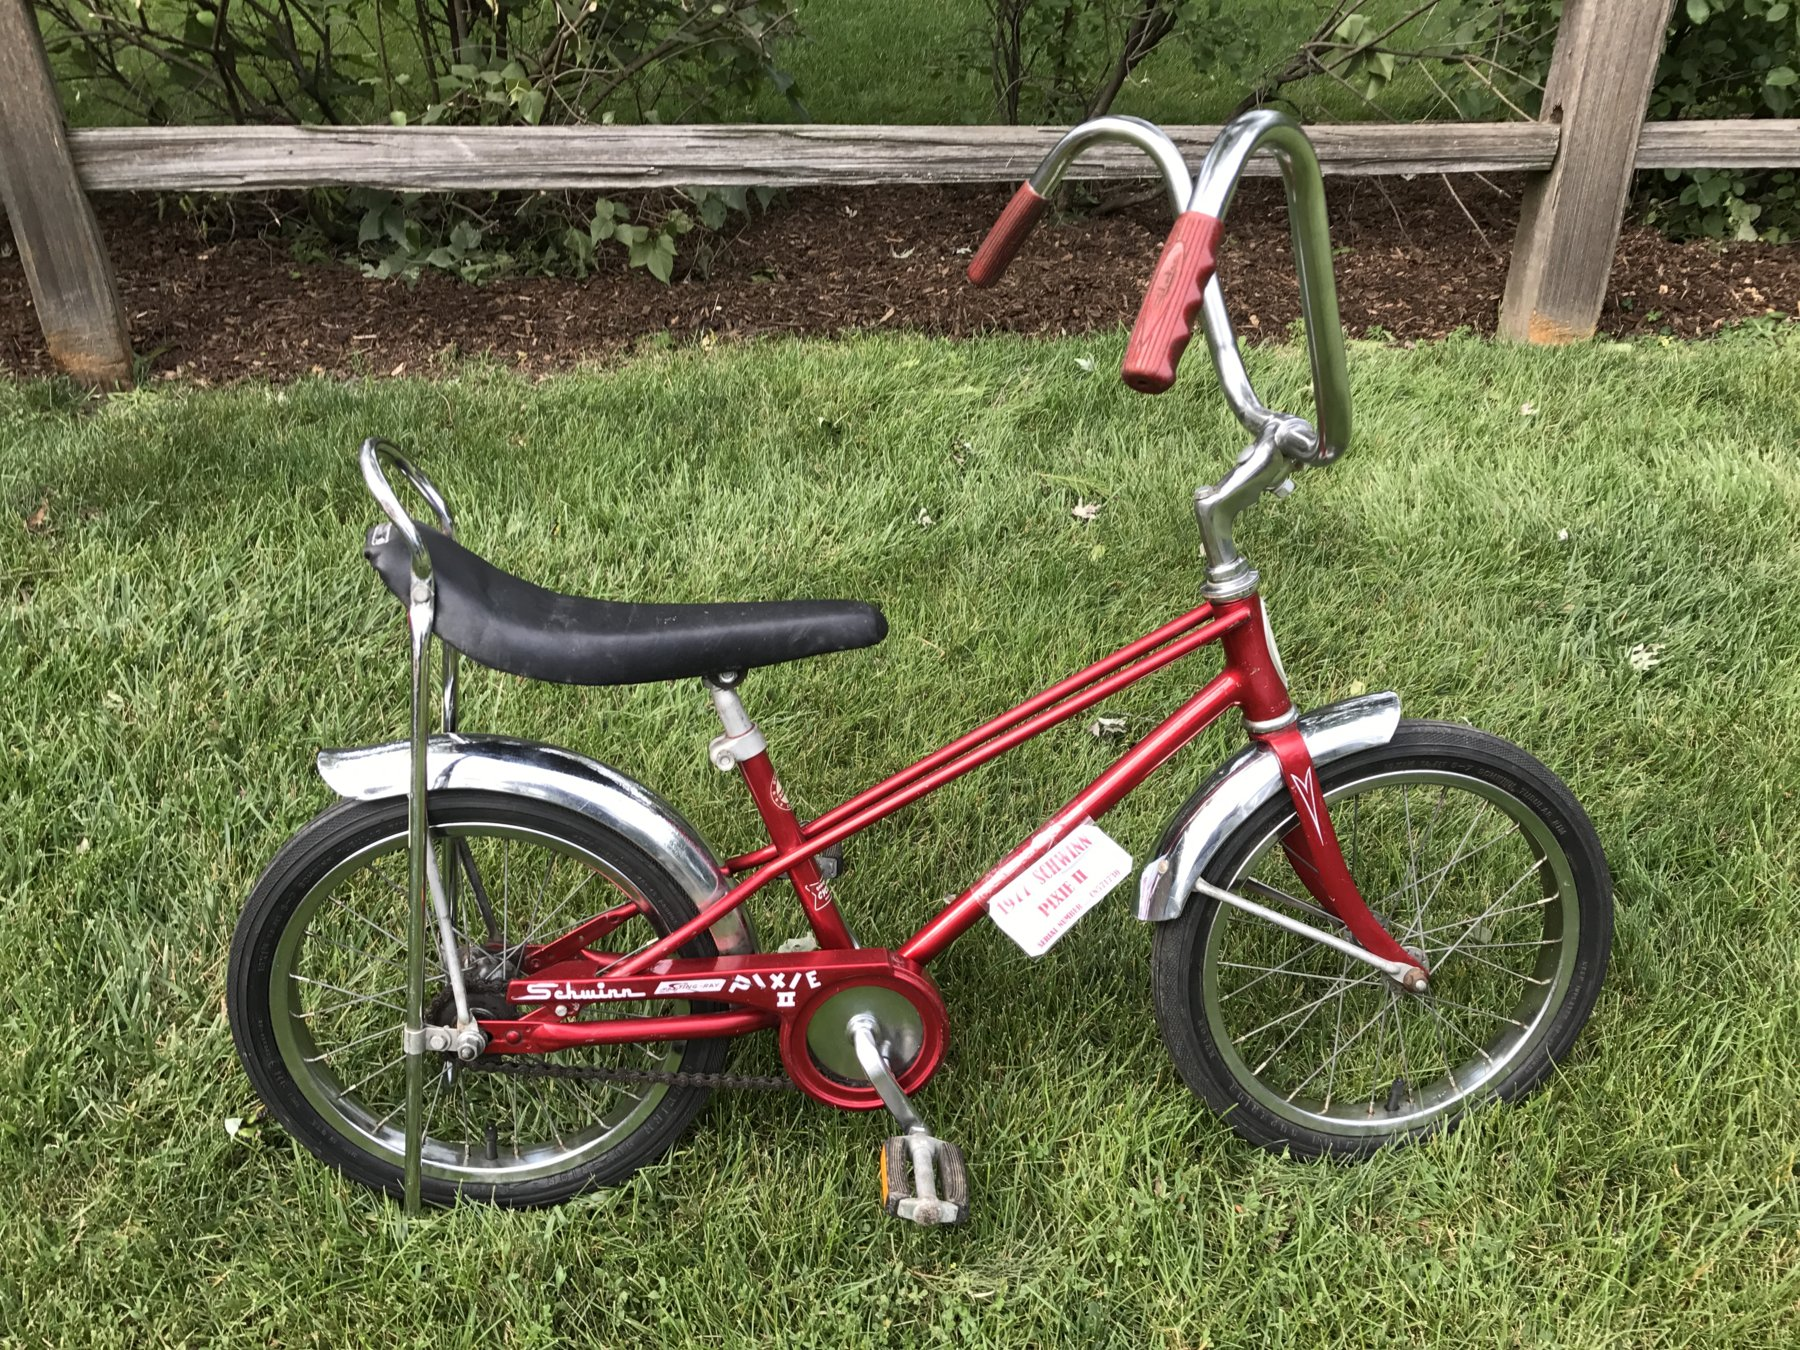 616ceccfebb Sold - 1977 Schwinn Pixie II | The Classic and Antique Bicycle Exchange